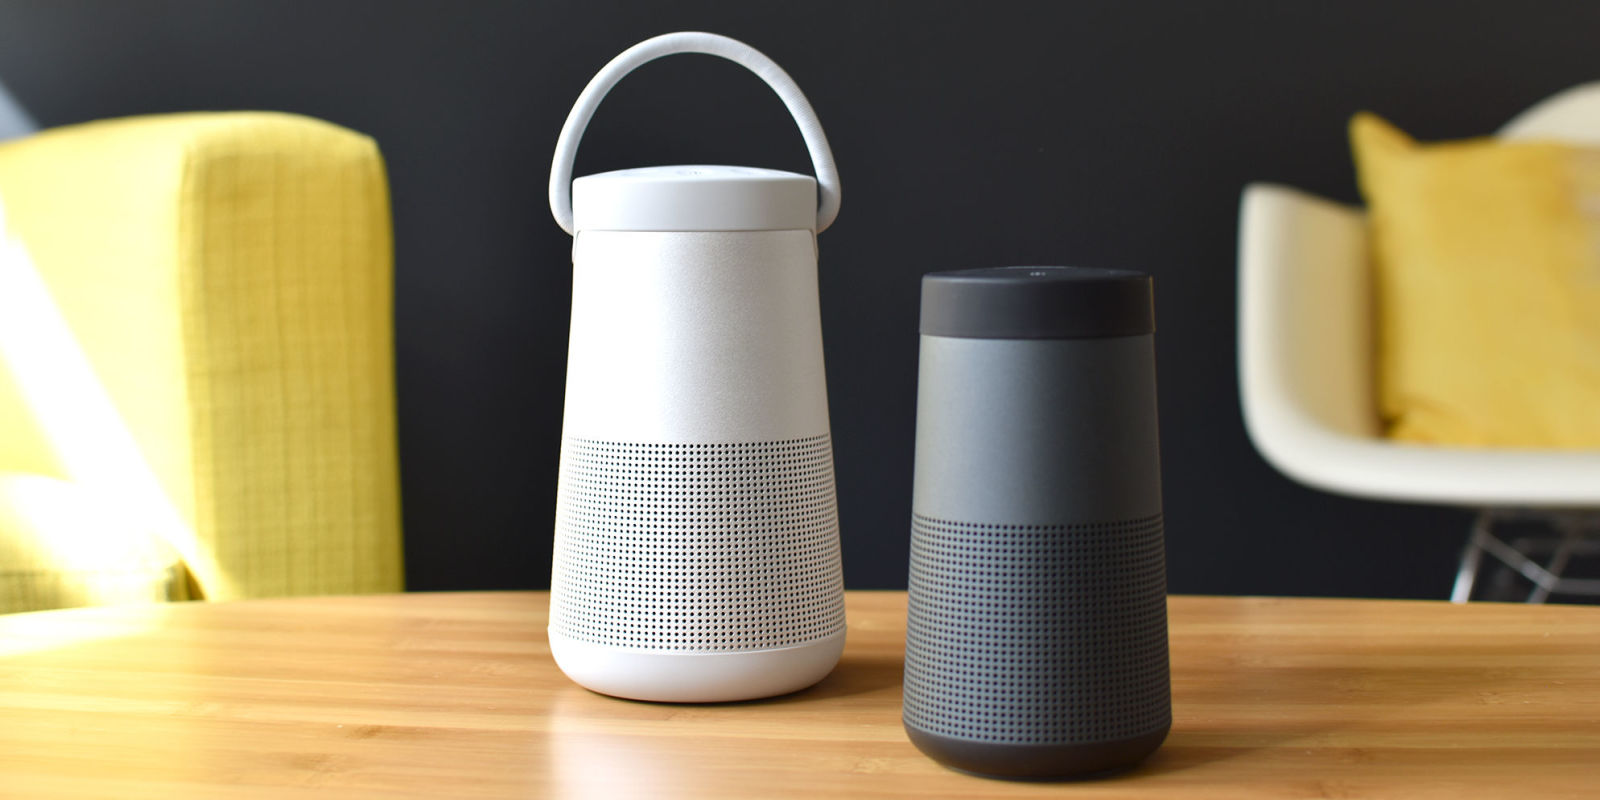 Bose Soundlink Revolve Speakers Review 2018 What To Know